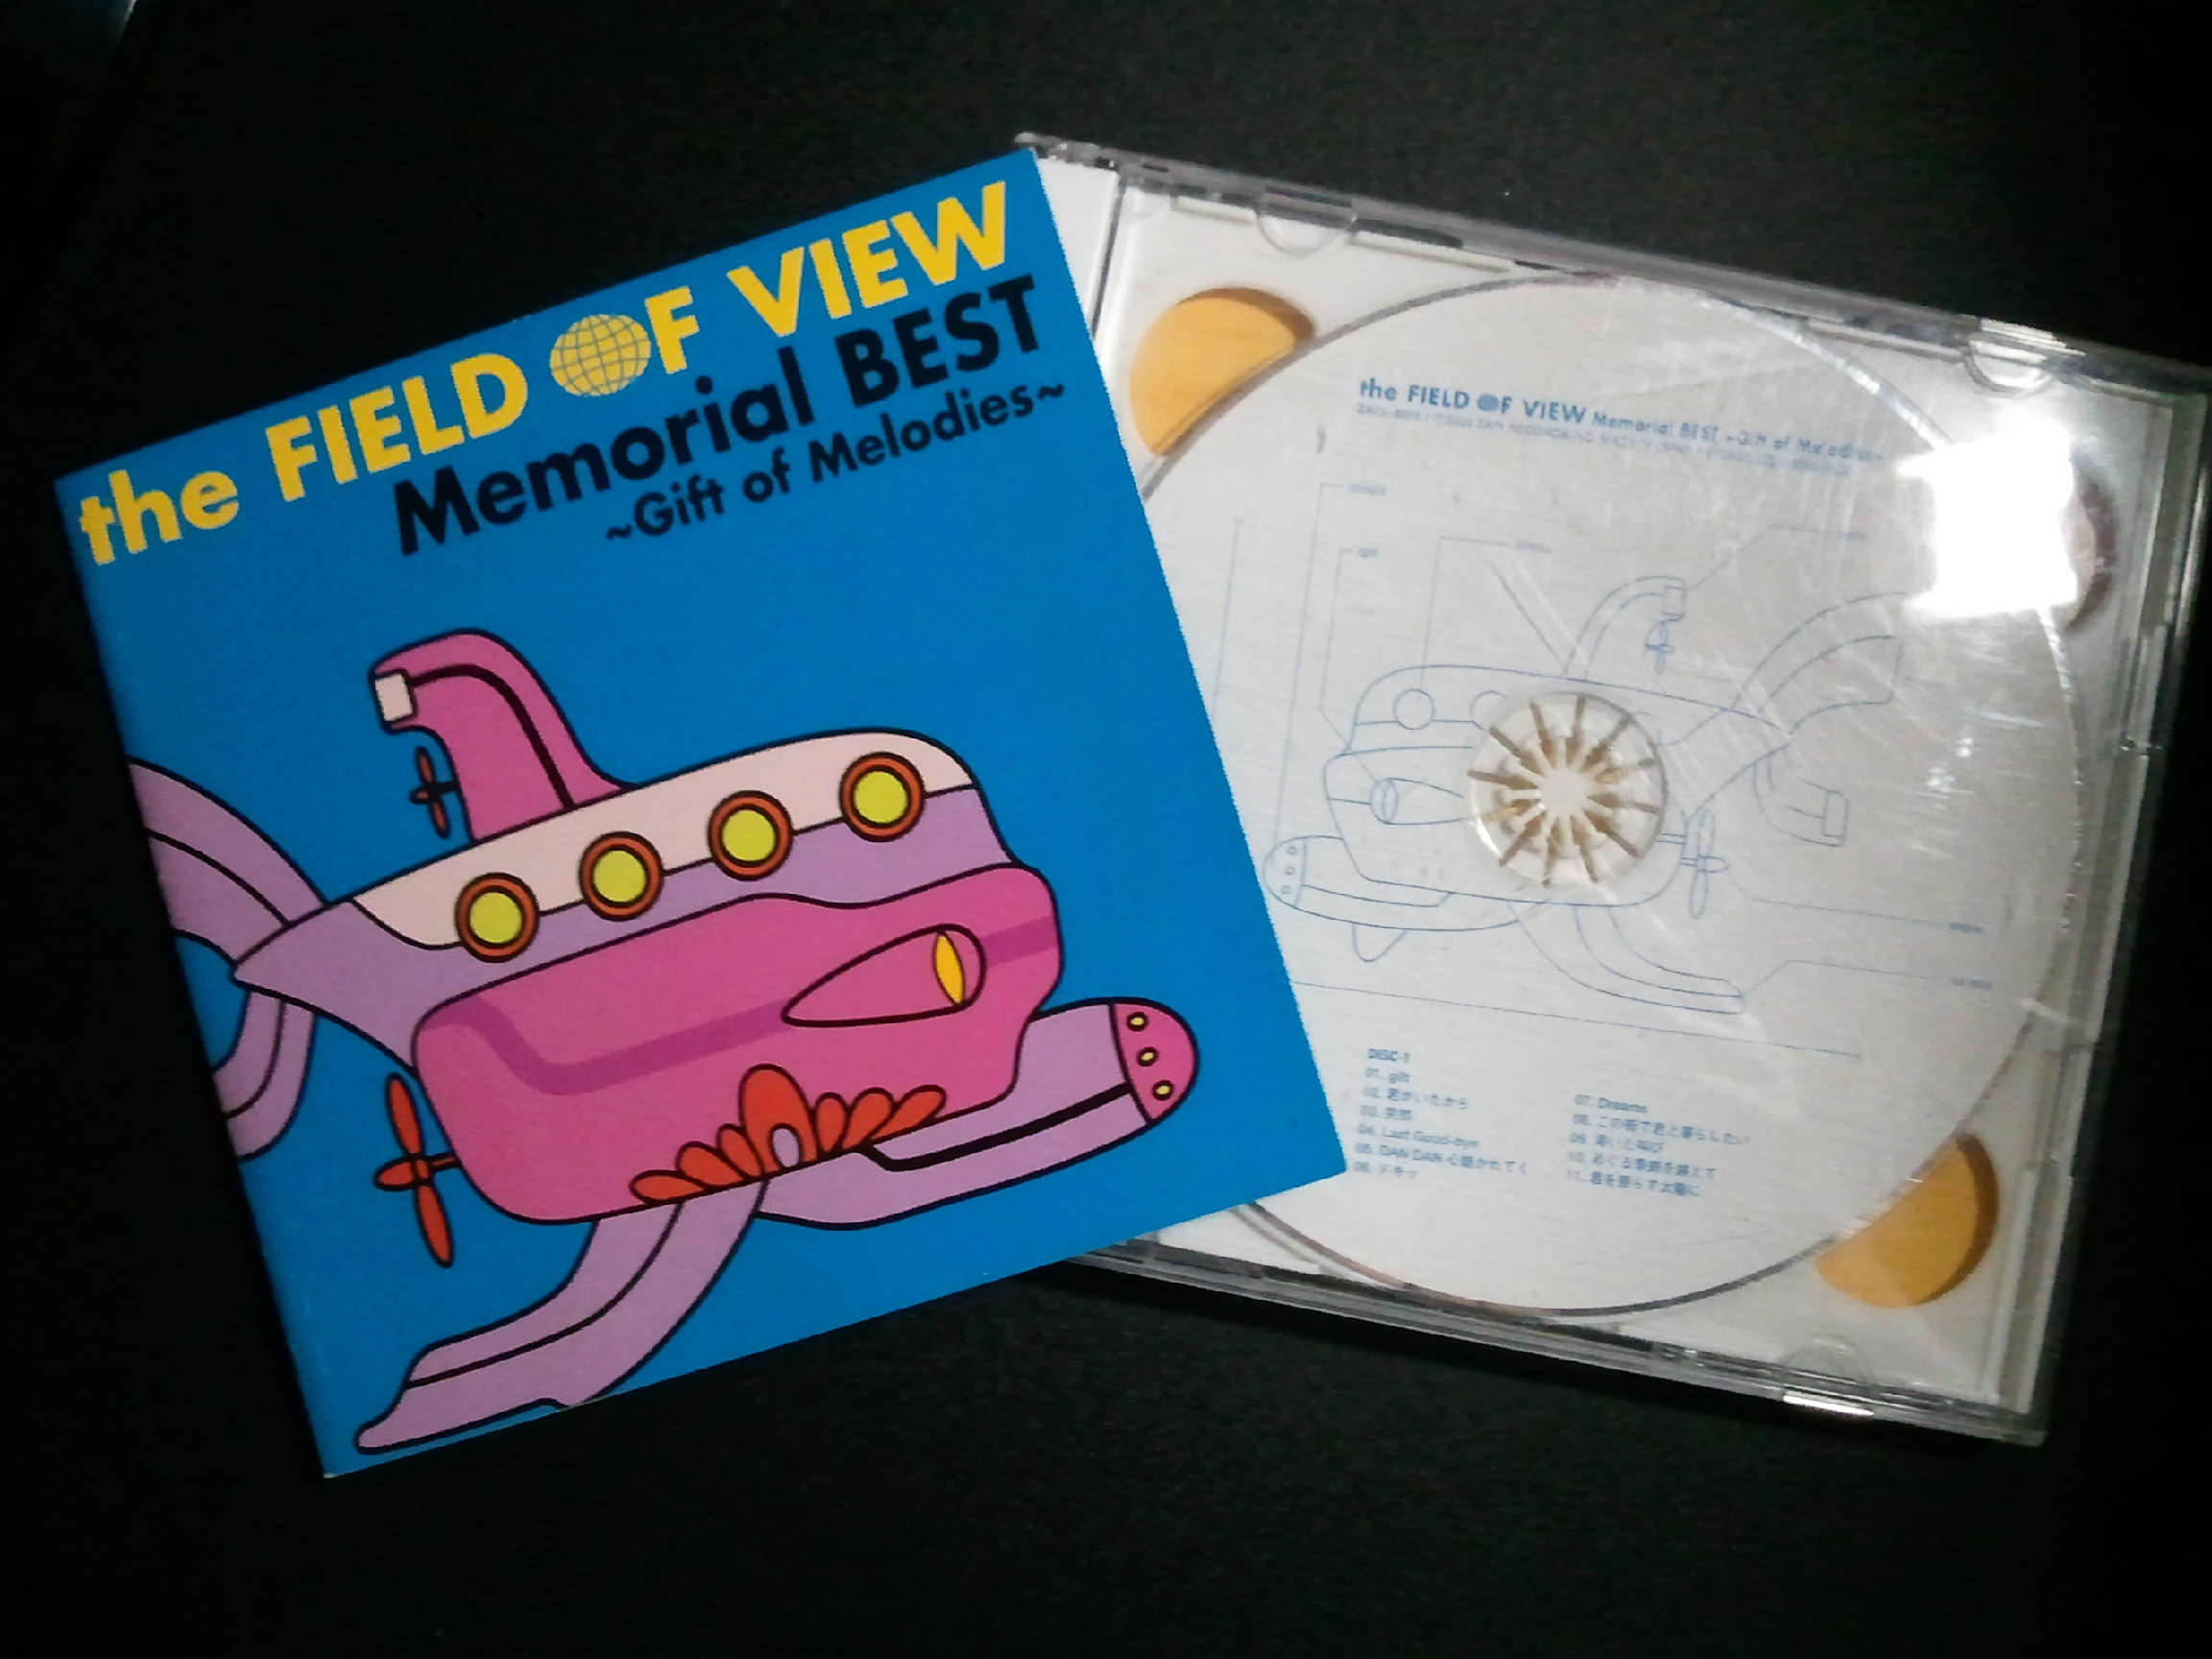 the Field of View memorial best ~ gift of melodies